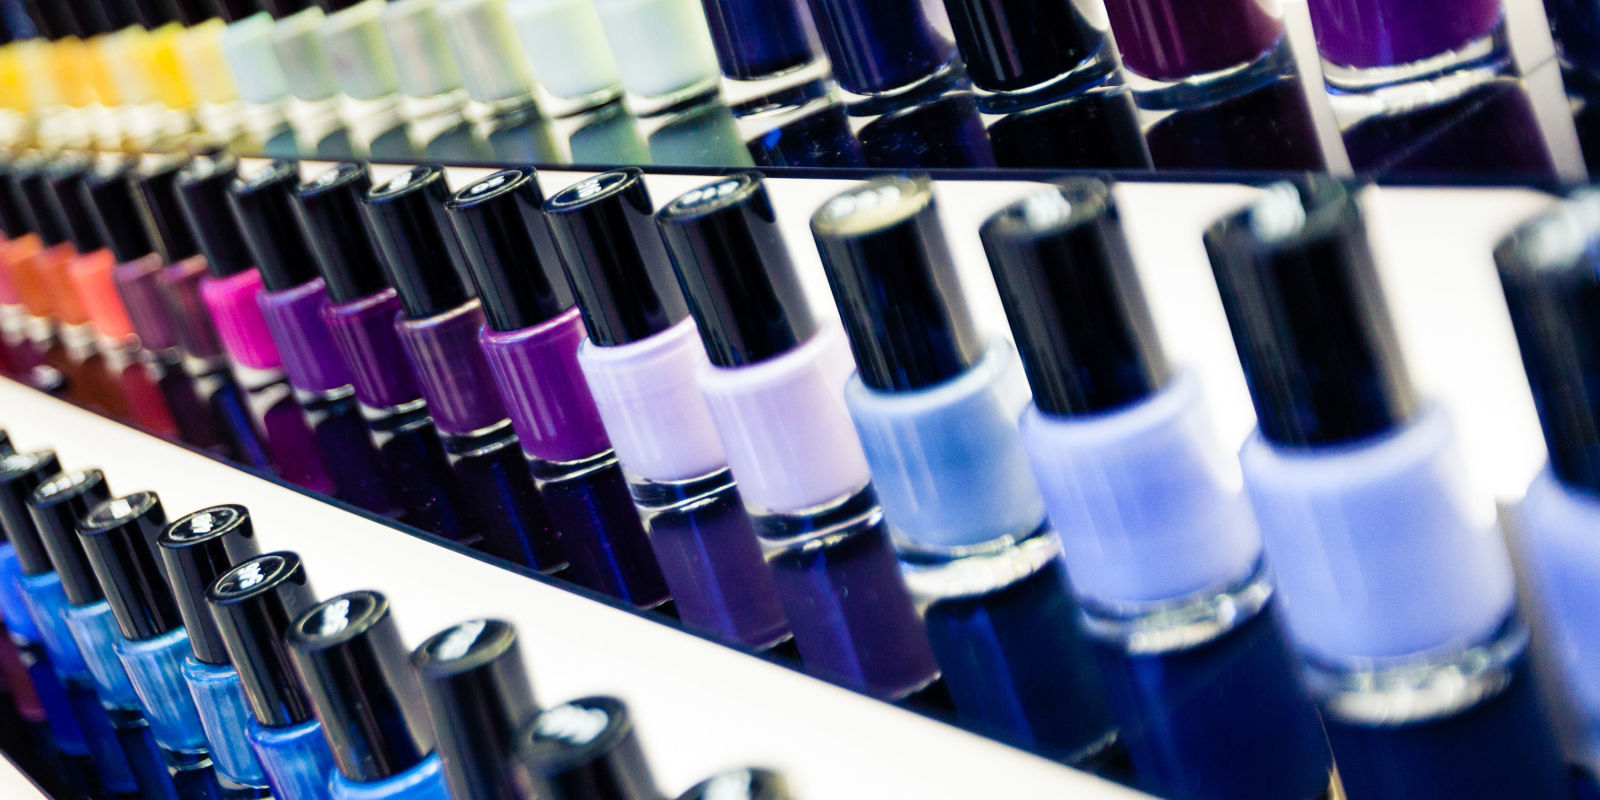 Nail Salon Etiquette 101 Manners And Tipping For